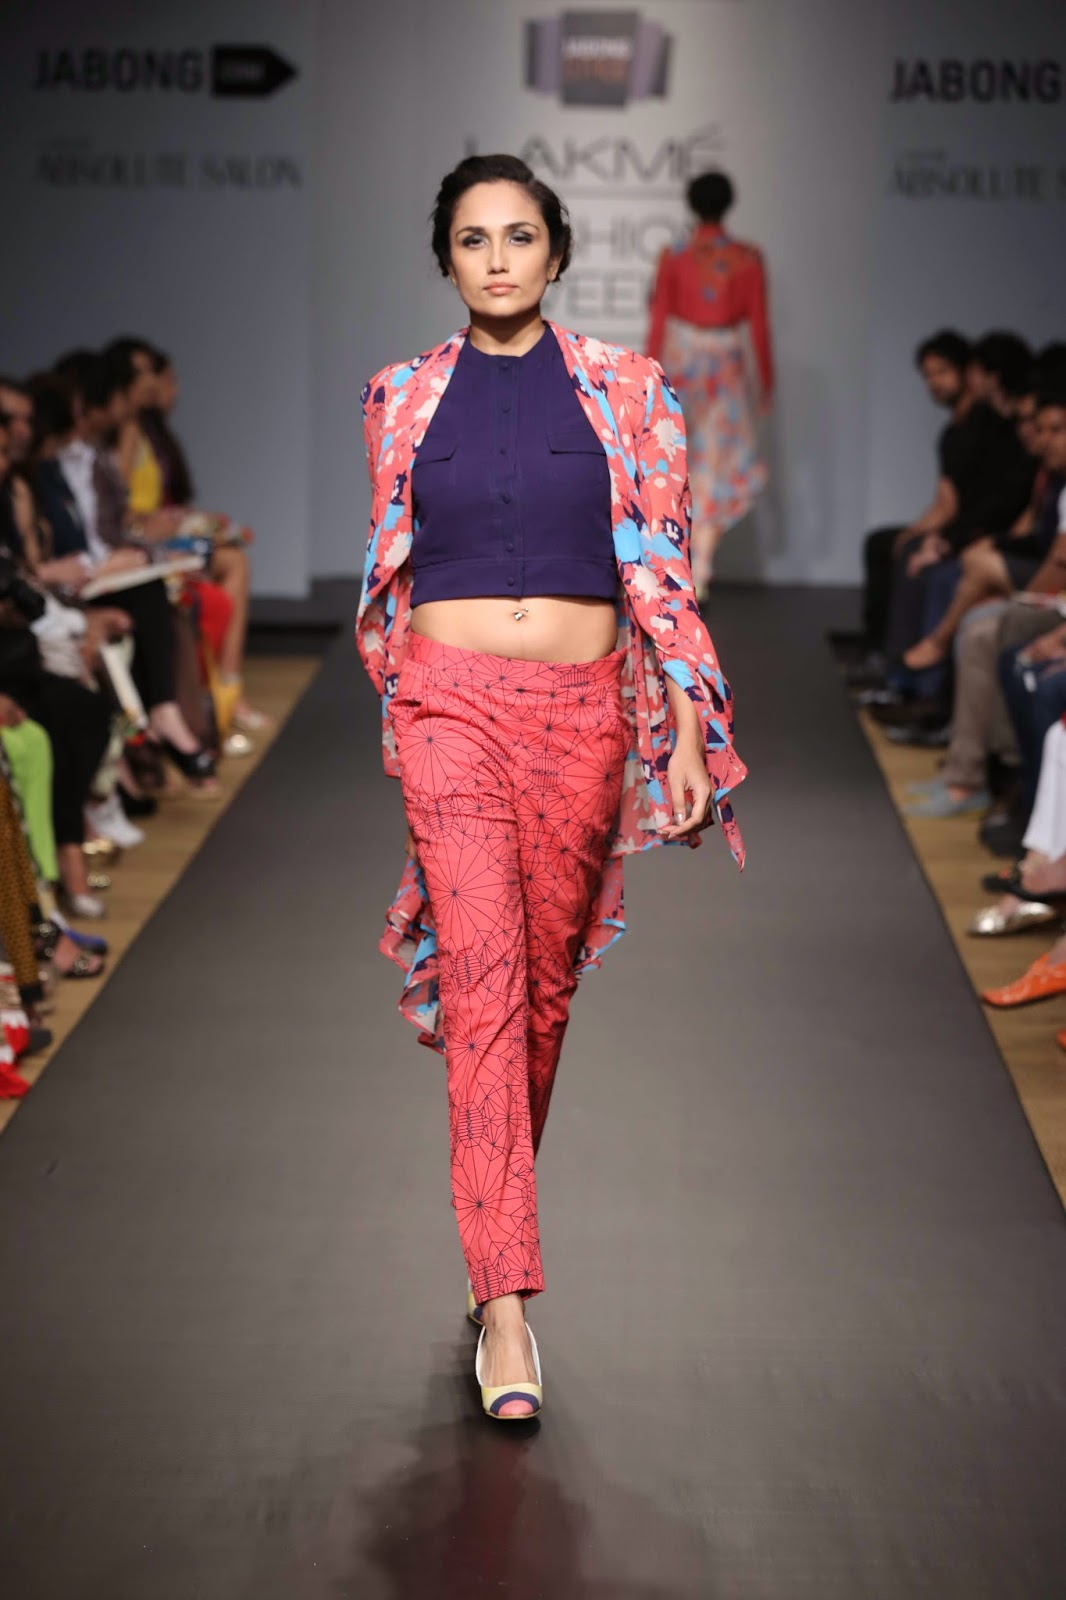 Asymmetrical cuts helped balance out the bold hues and added a whimsical touch to each piece. Kurti-dresses, tunics, jackets, tops and pants were the elegantly draped in fabrics like crepe, organza and sheer material and sported several prints both solid as well as see-through in the form of flowers and geometric designs.